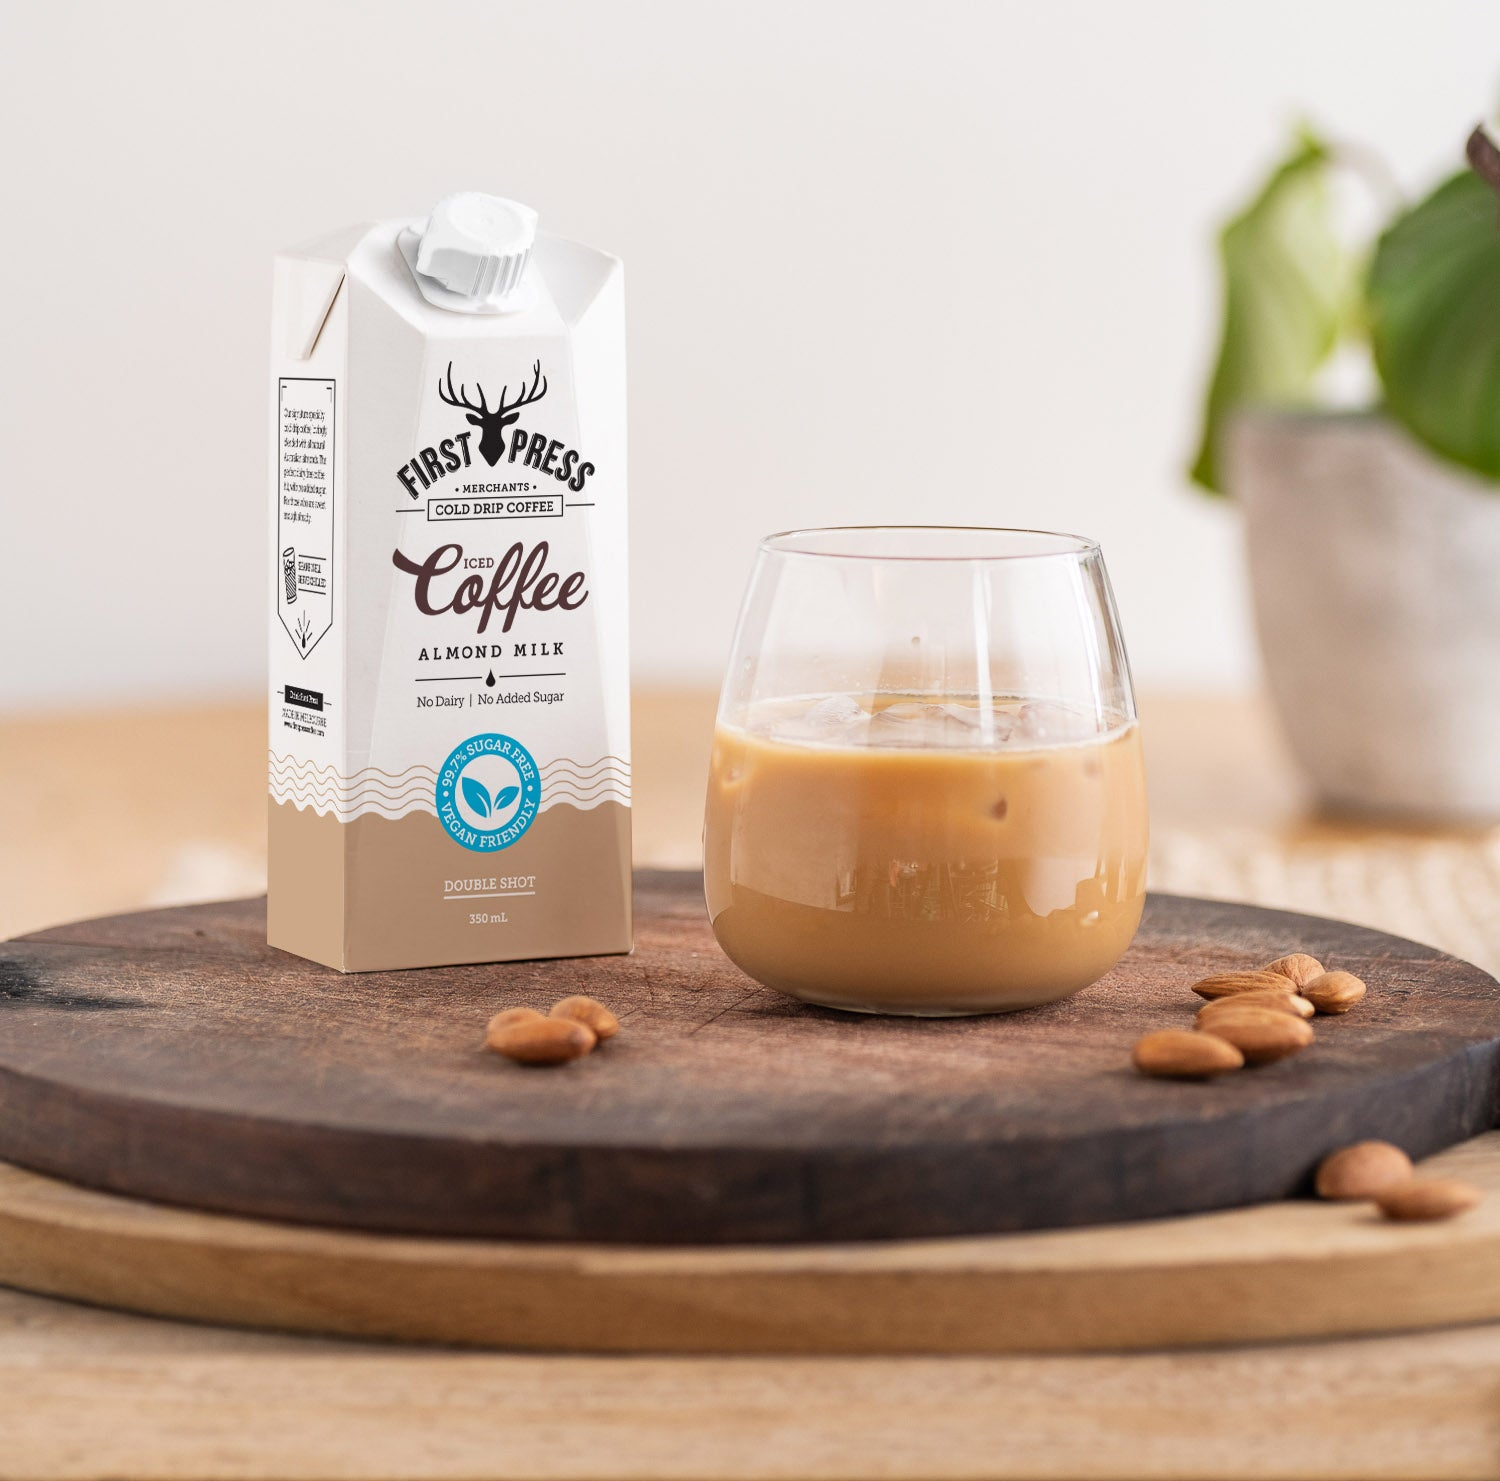 Iced Coffee Almond Milk - No Added Sugar | First Press Cold Drip Coffee | Melbourne Made